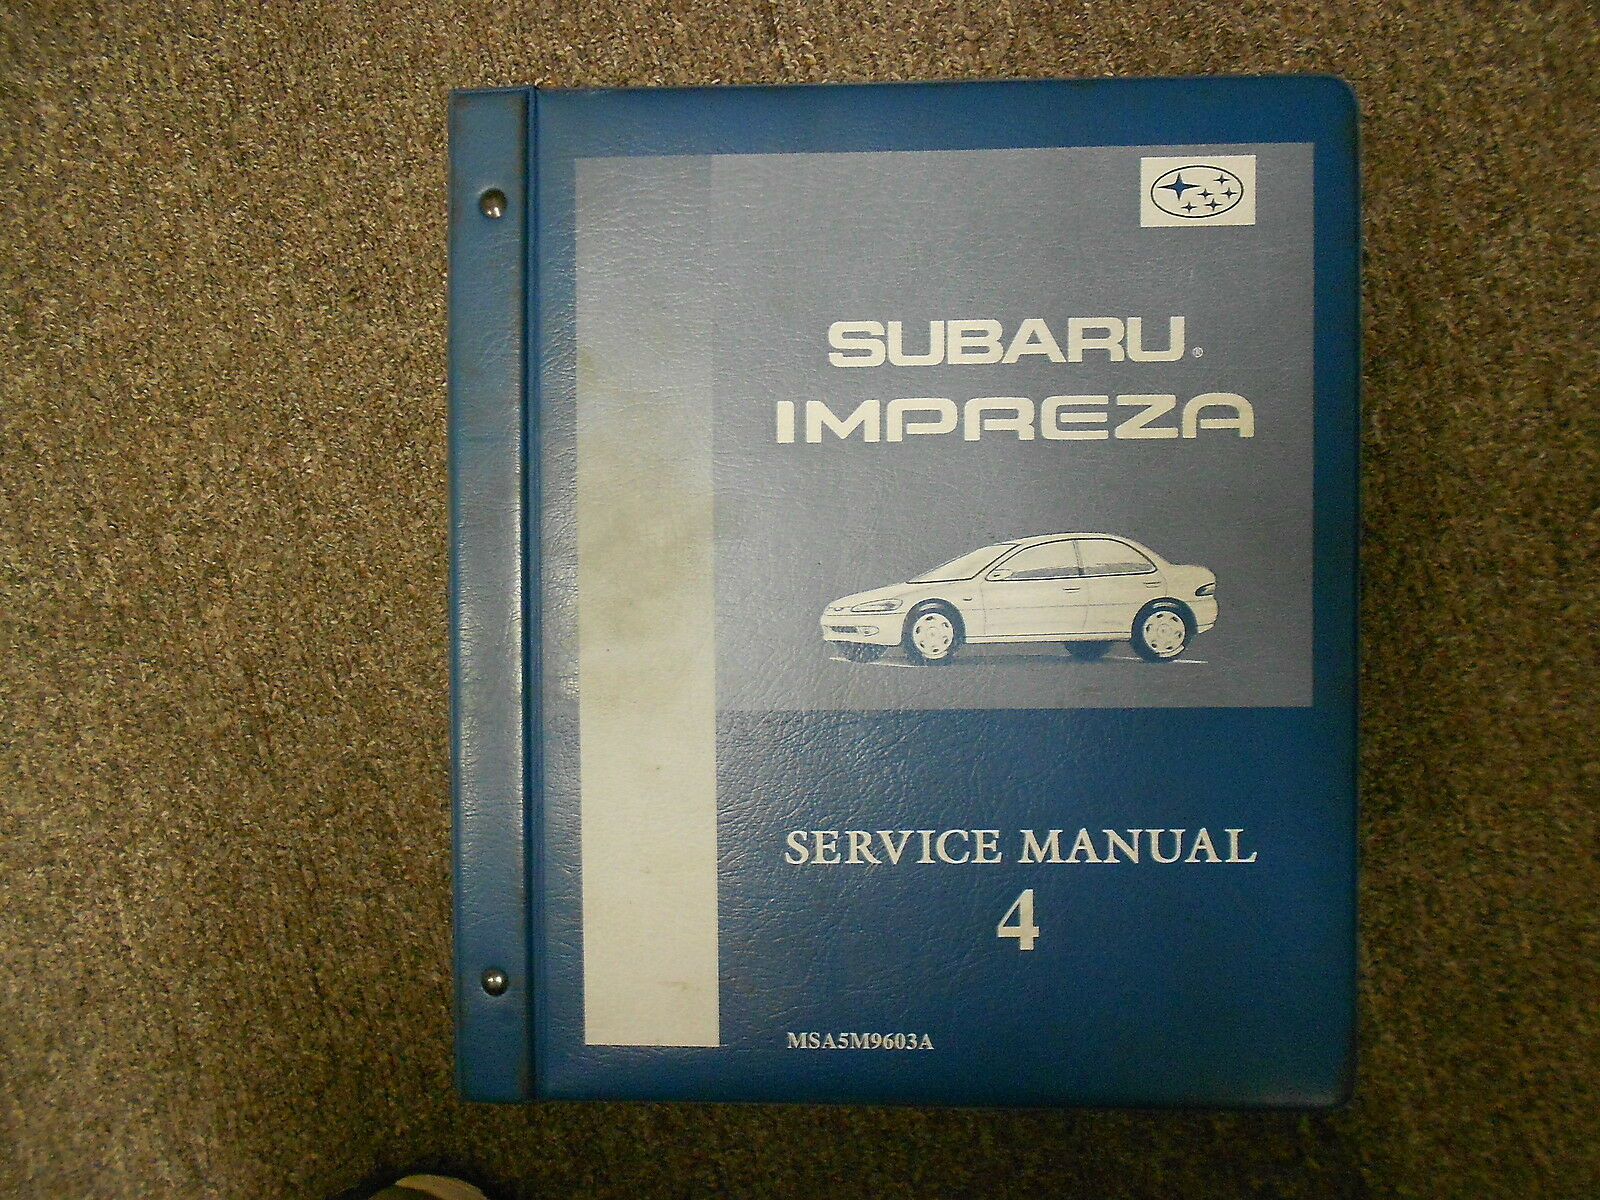 1996 Subaru Impreza Service Manual Volume 4 FACTORY OEM BOOK 96 BINDER 1 of  10Only 4 available ...